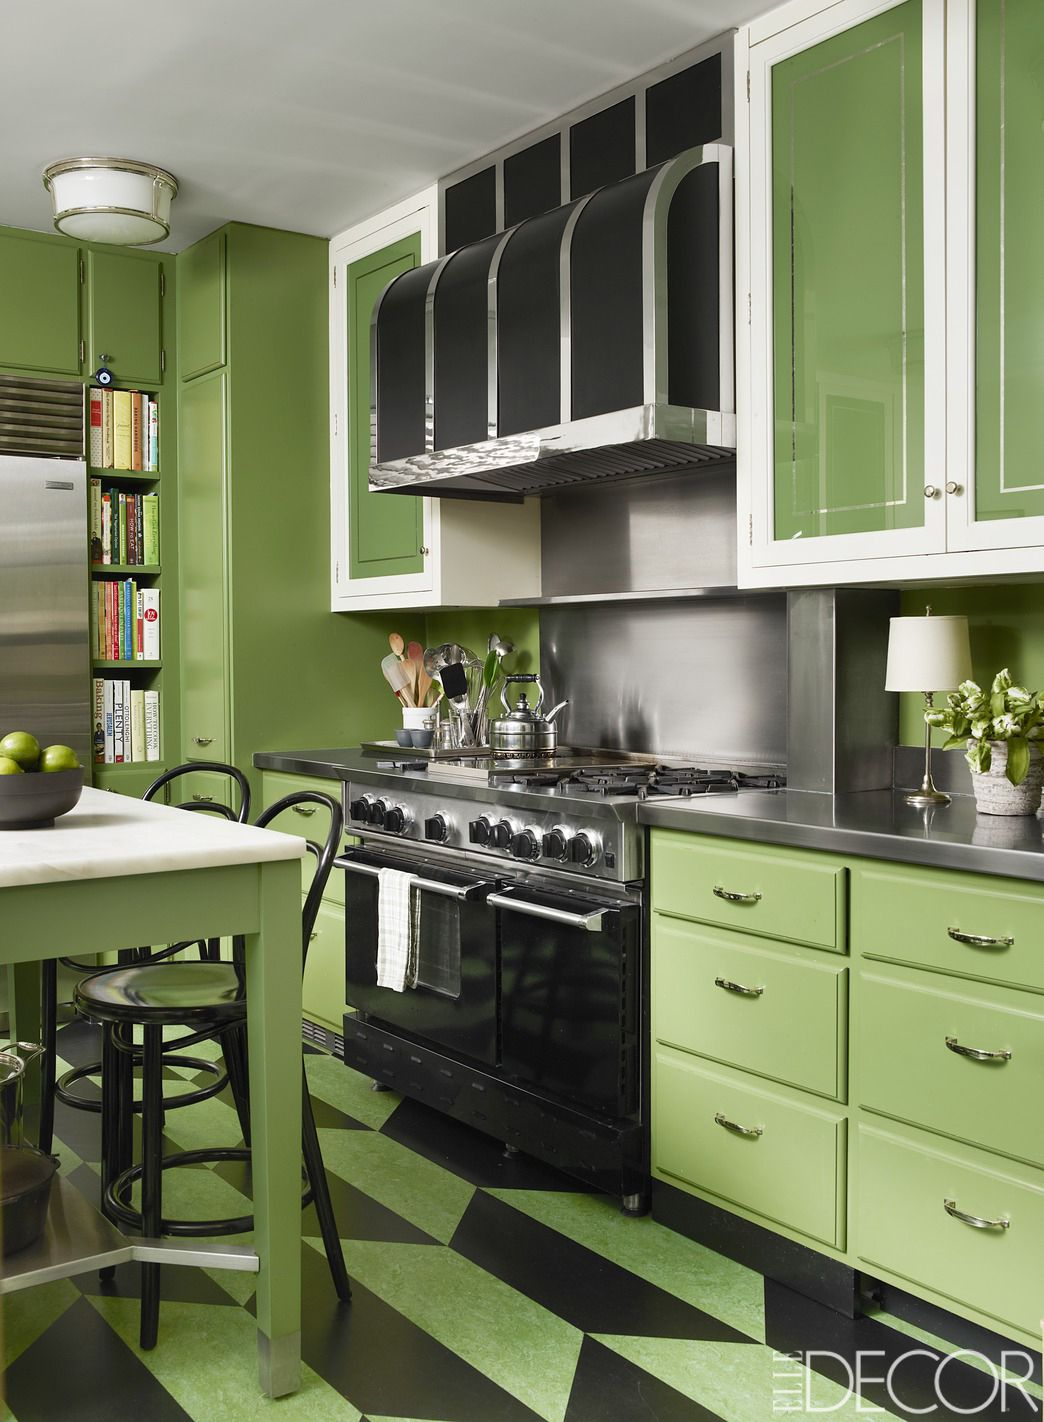 Designing A Kitchen 50 Small Kitchen Design Ideas  Decorating Tiny Kitchens